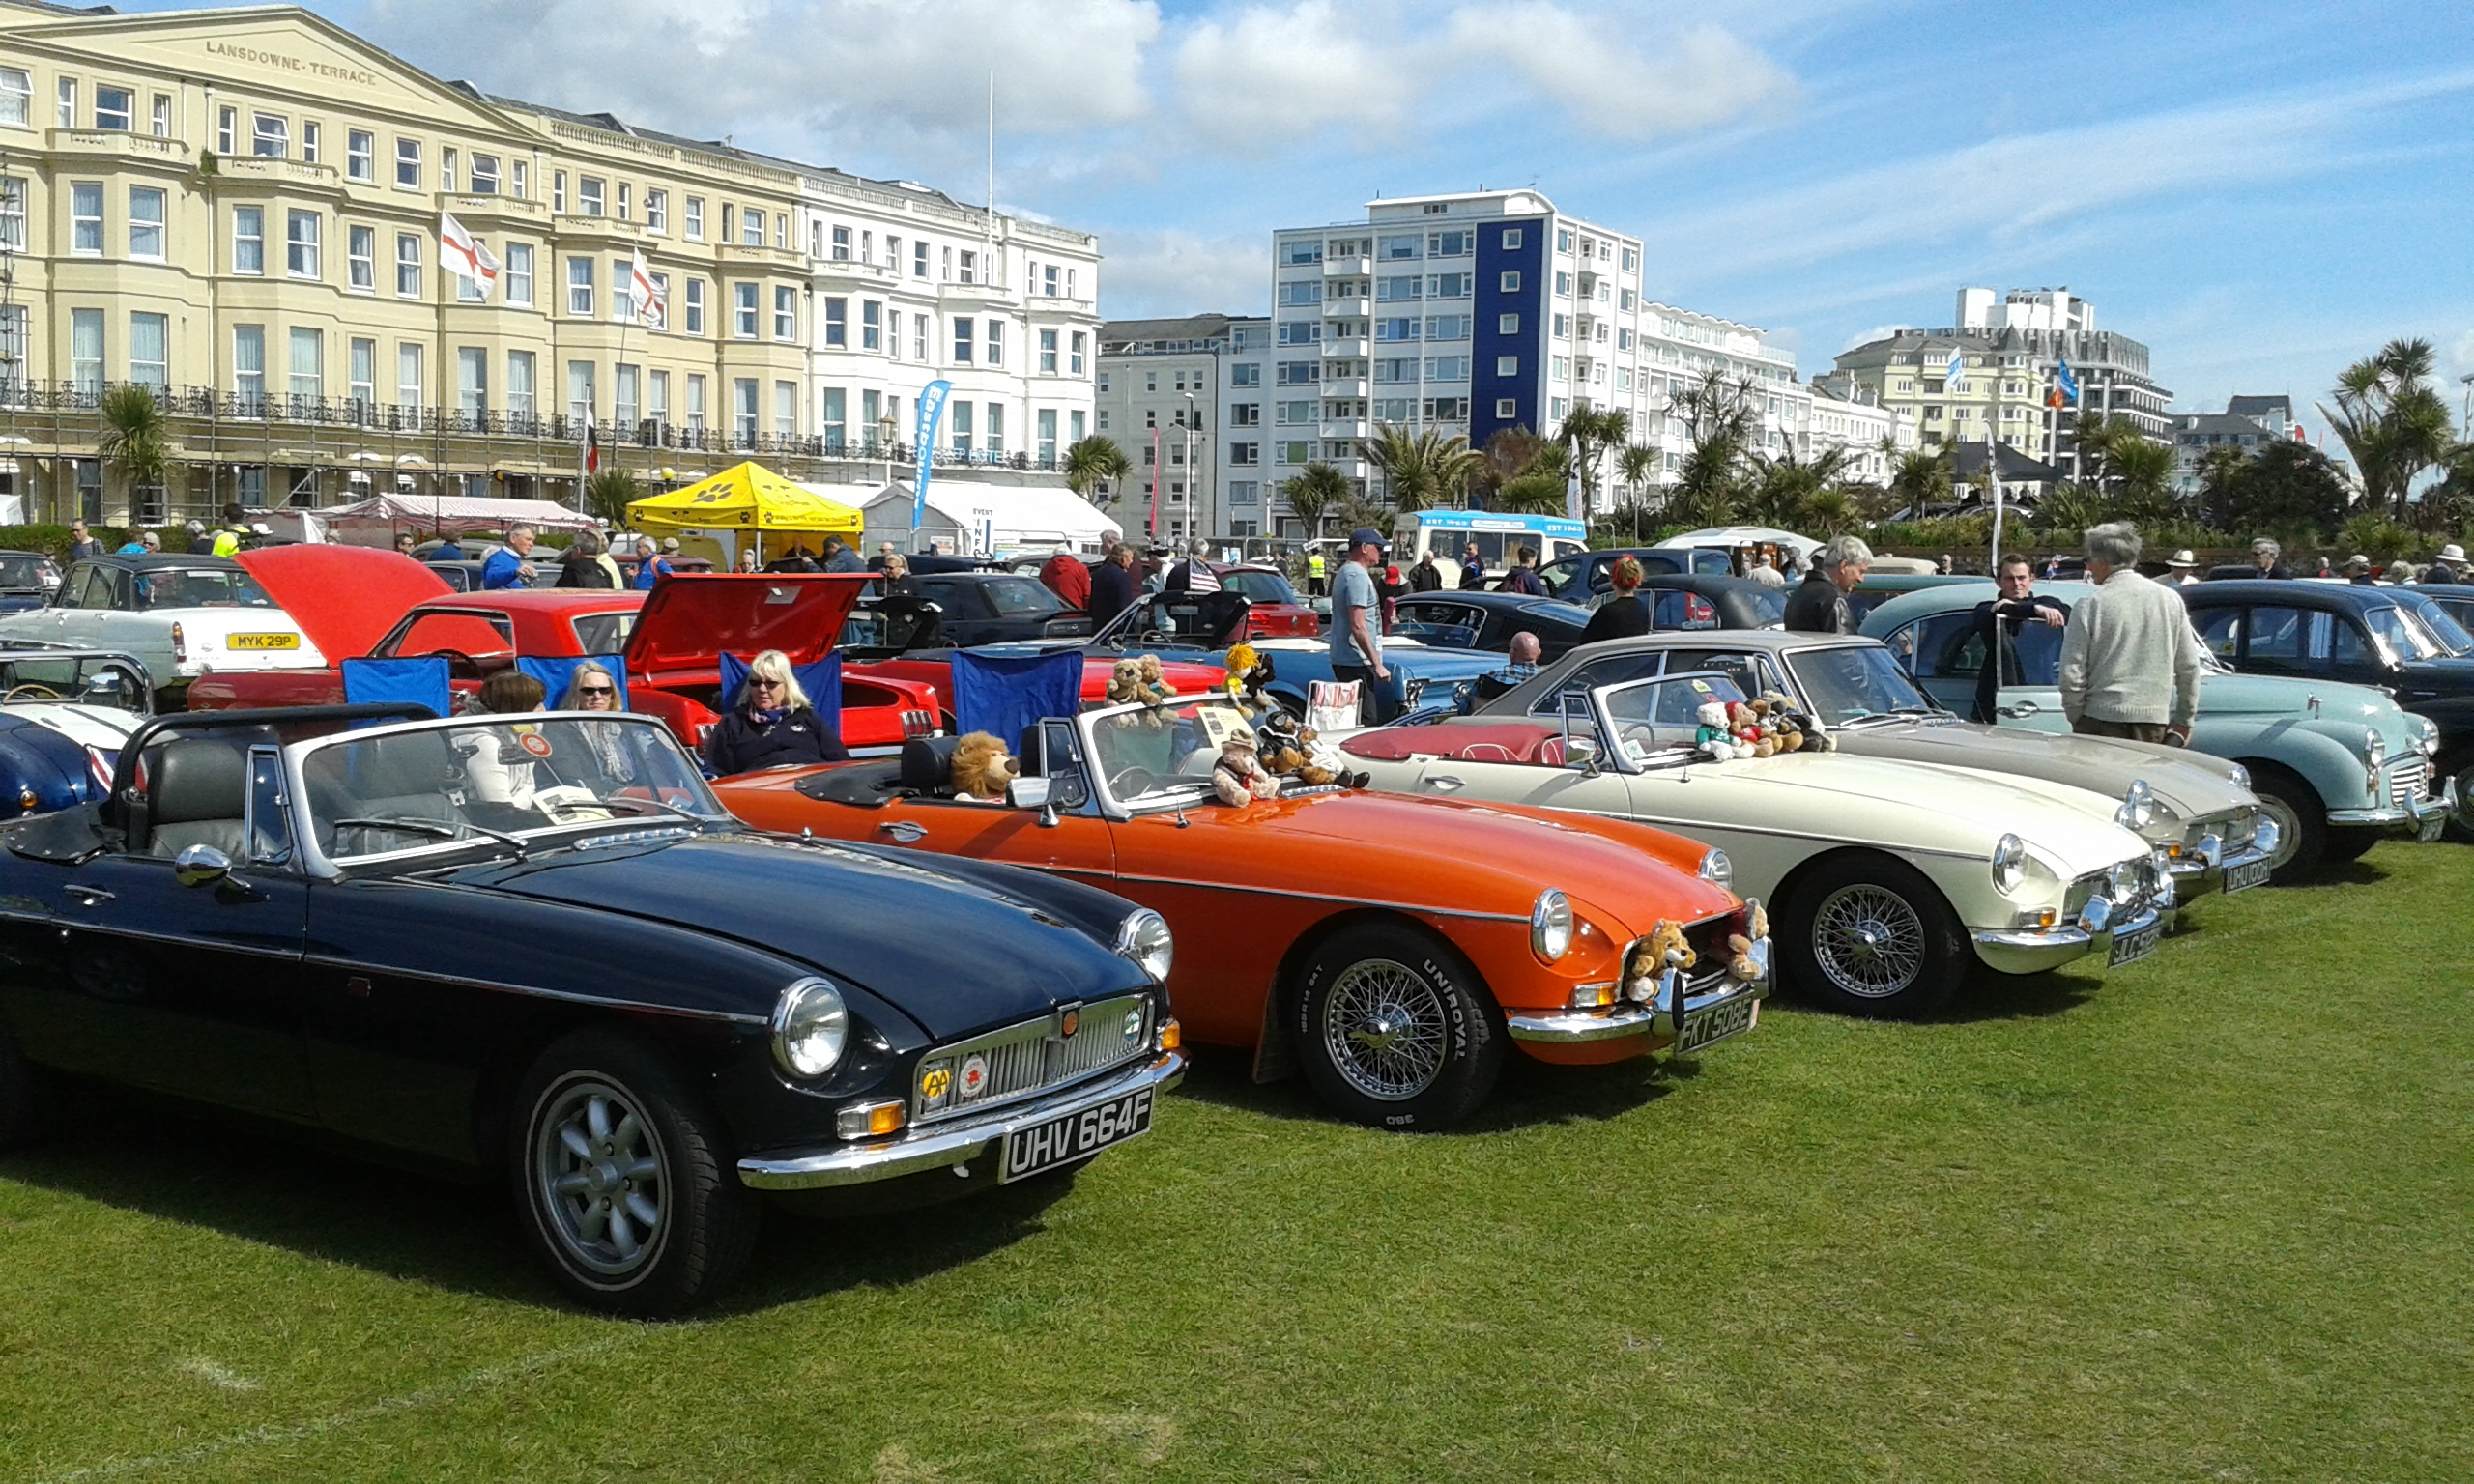 Good day at Eastbourne